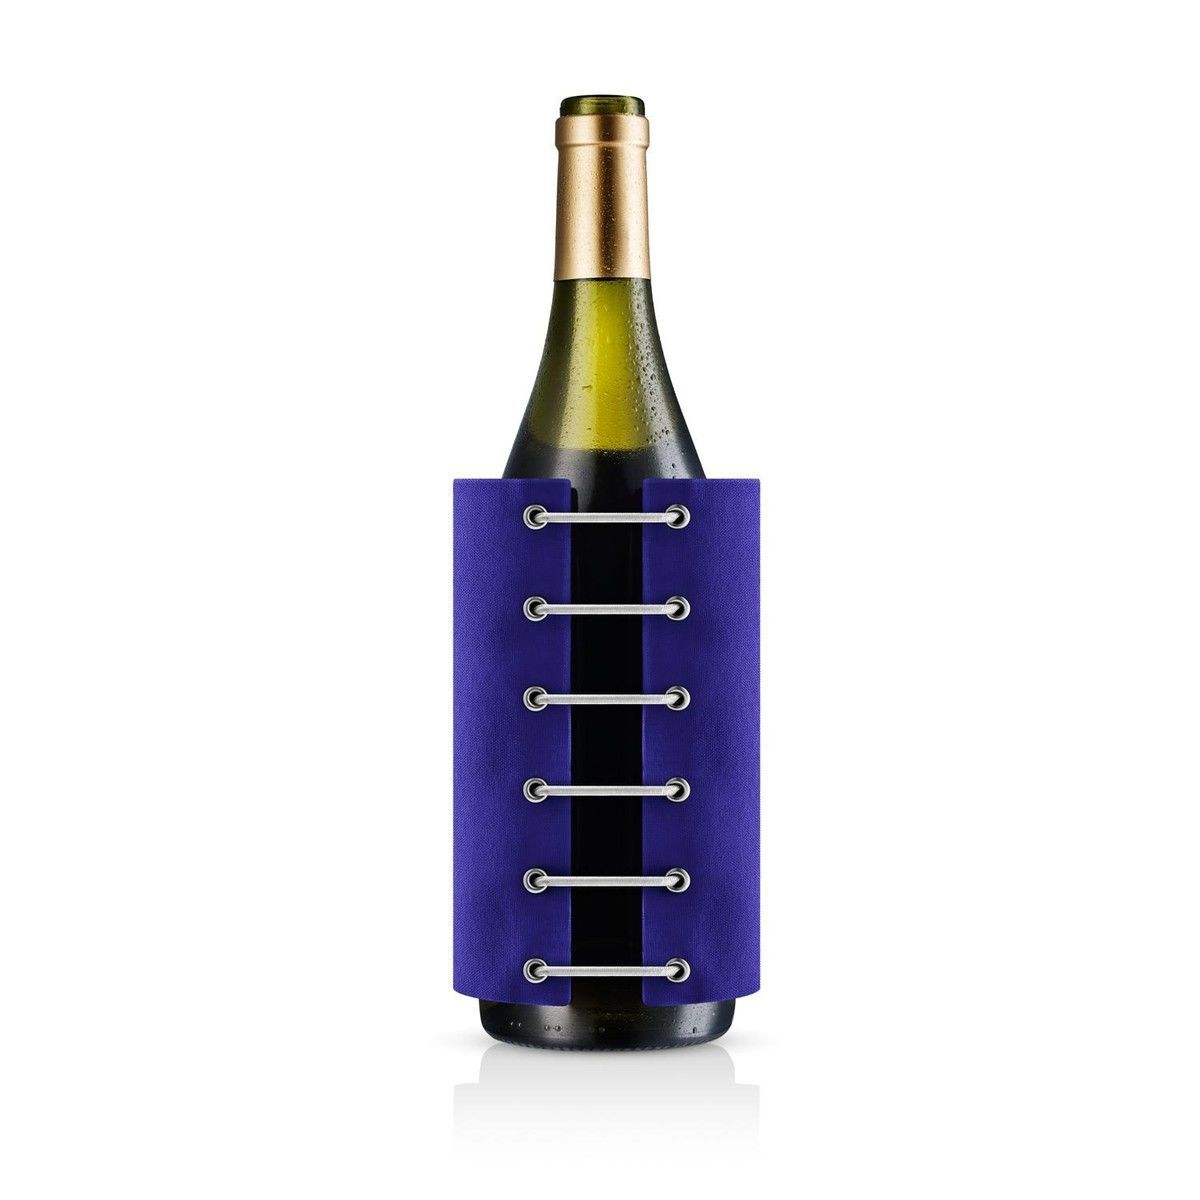 Eva solo staycool wine cooler eva solo Wine cooler brands